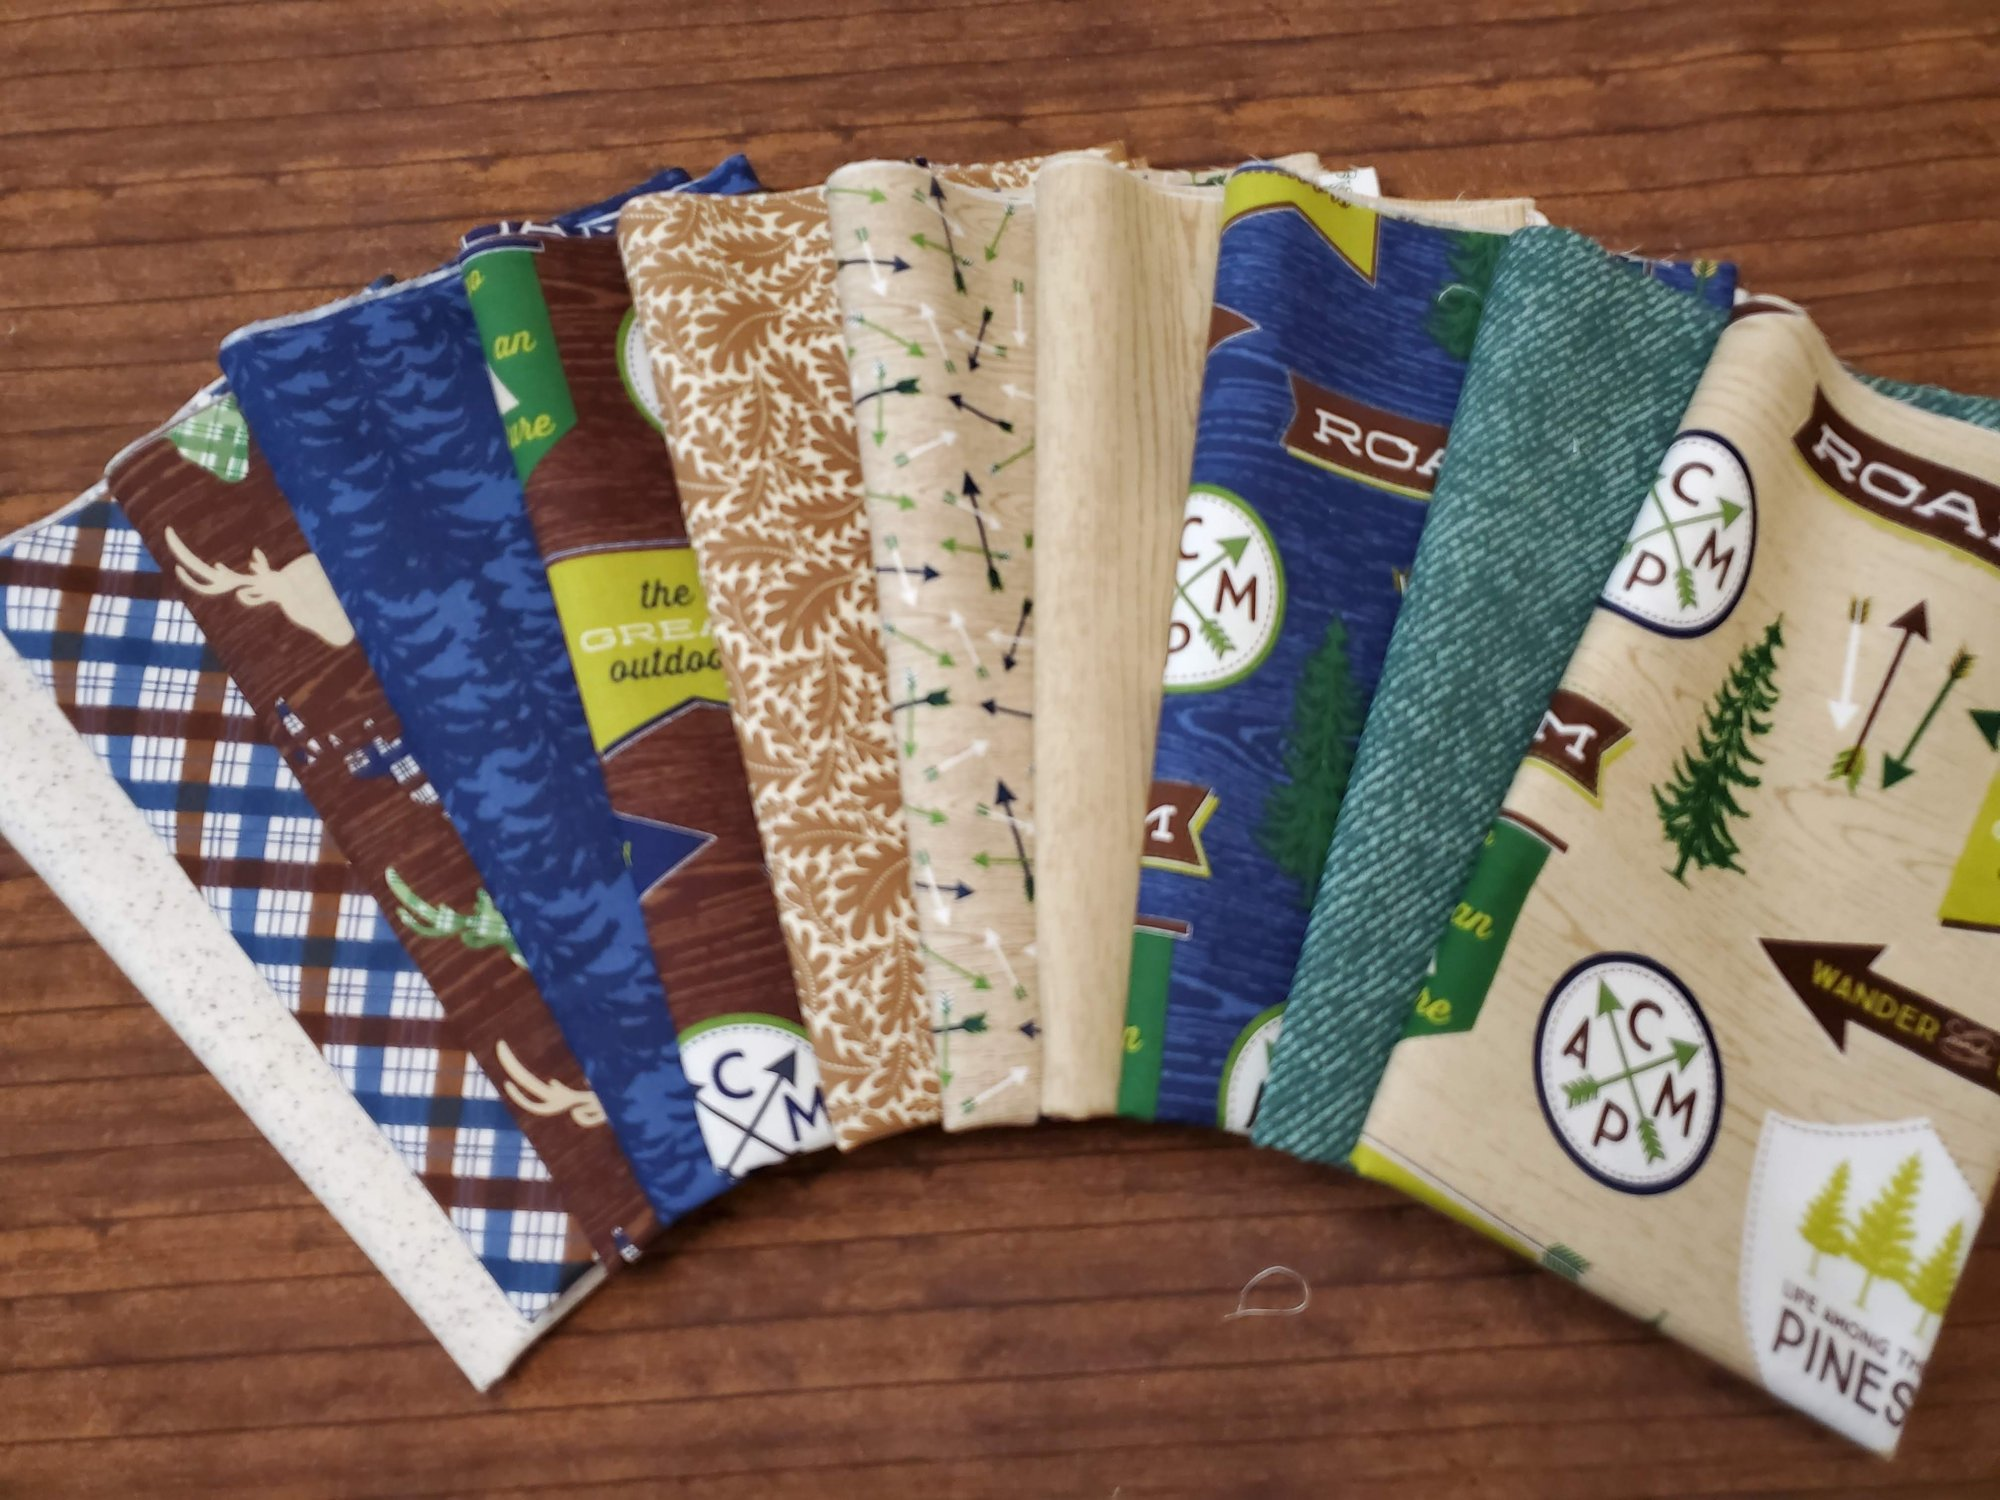 The Great Outdoors by Riley Blake Designs - 11 Piece Half Yard Bundle Pack - compiled by Ken